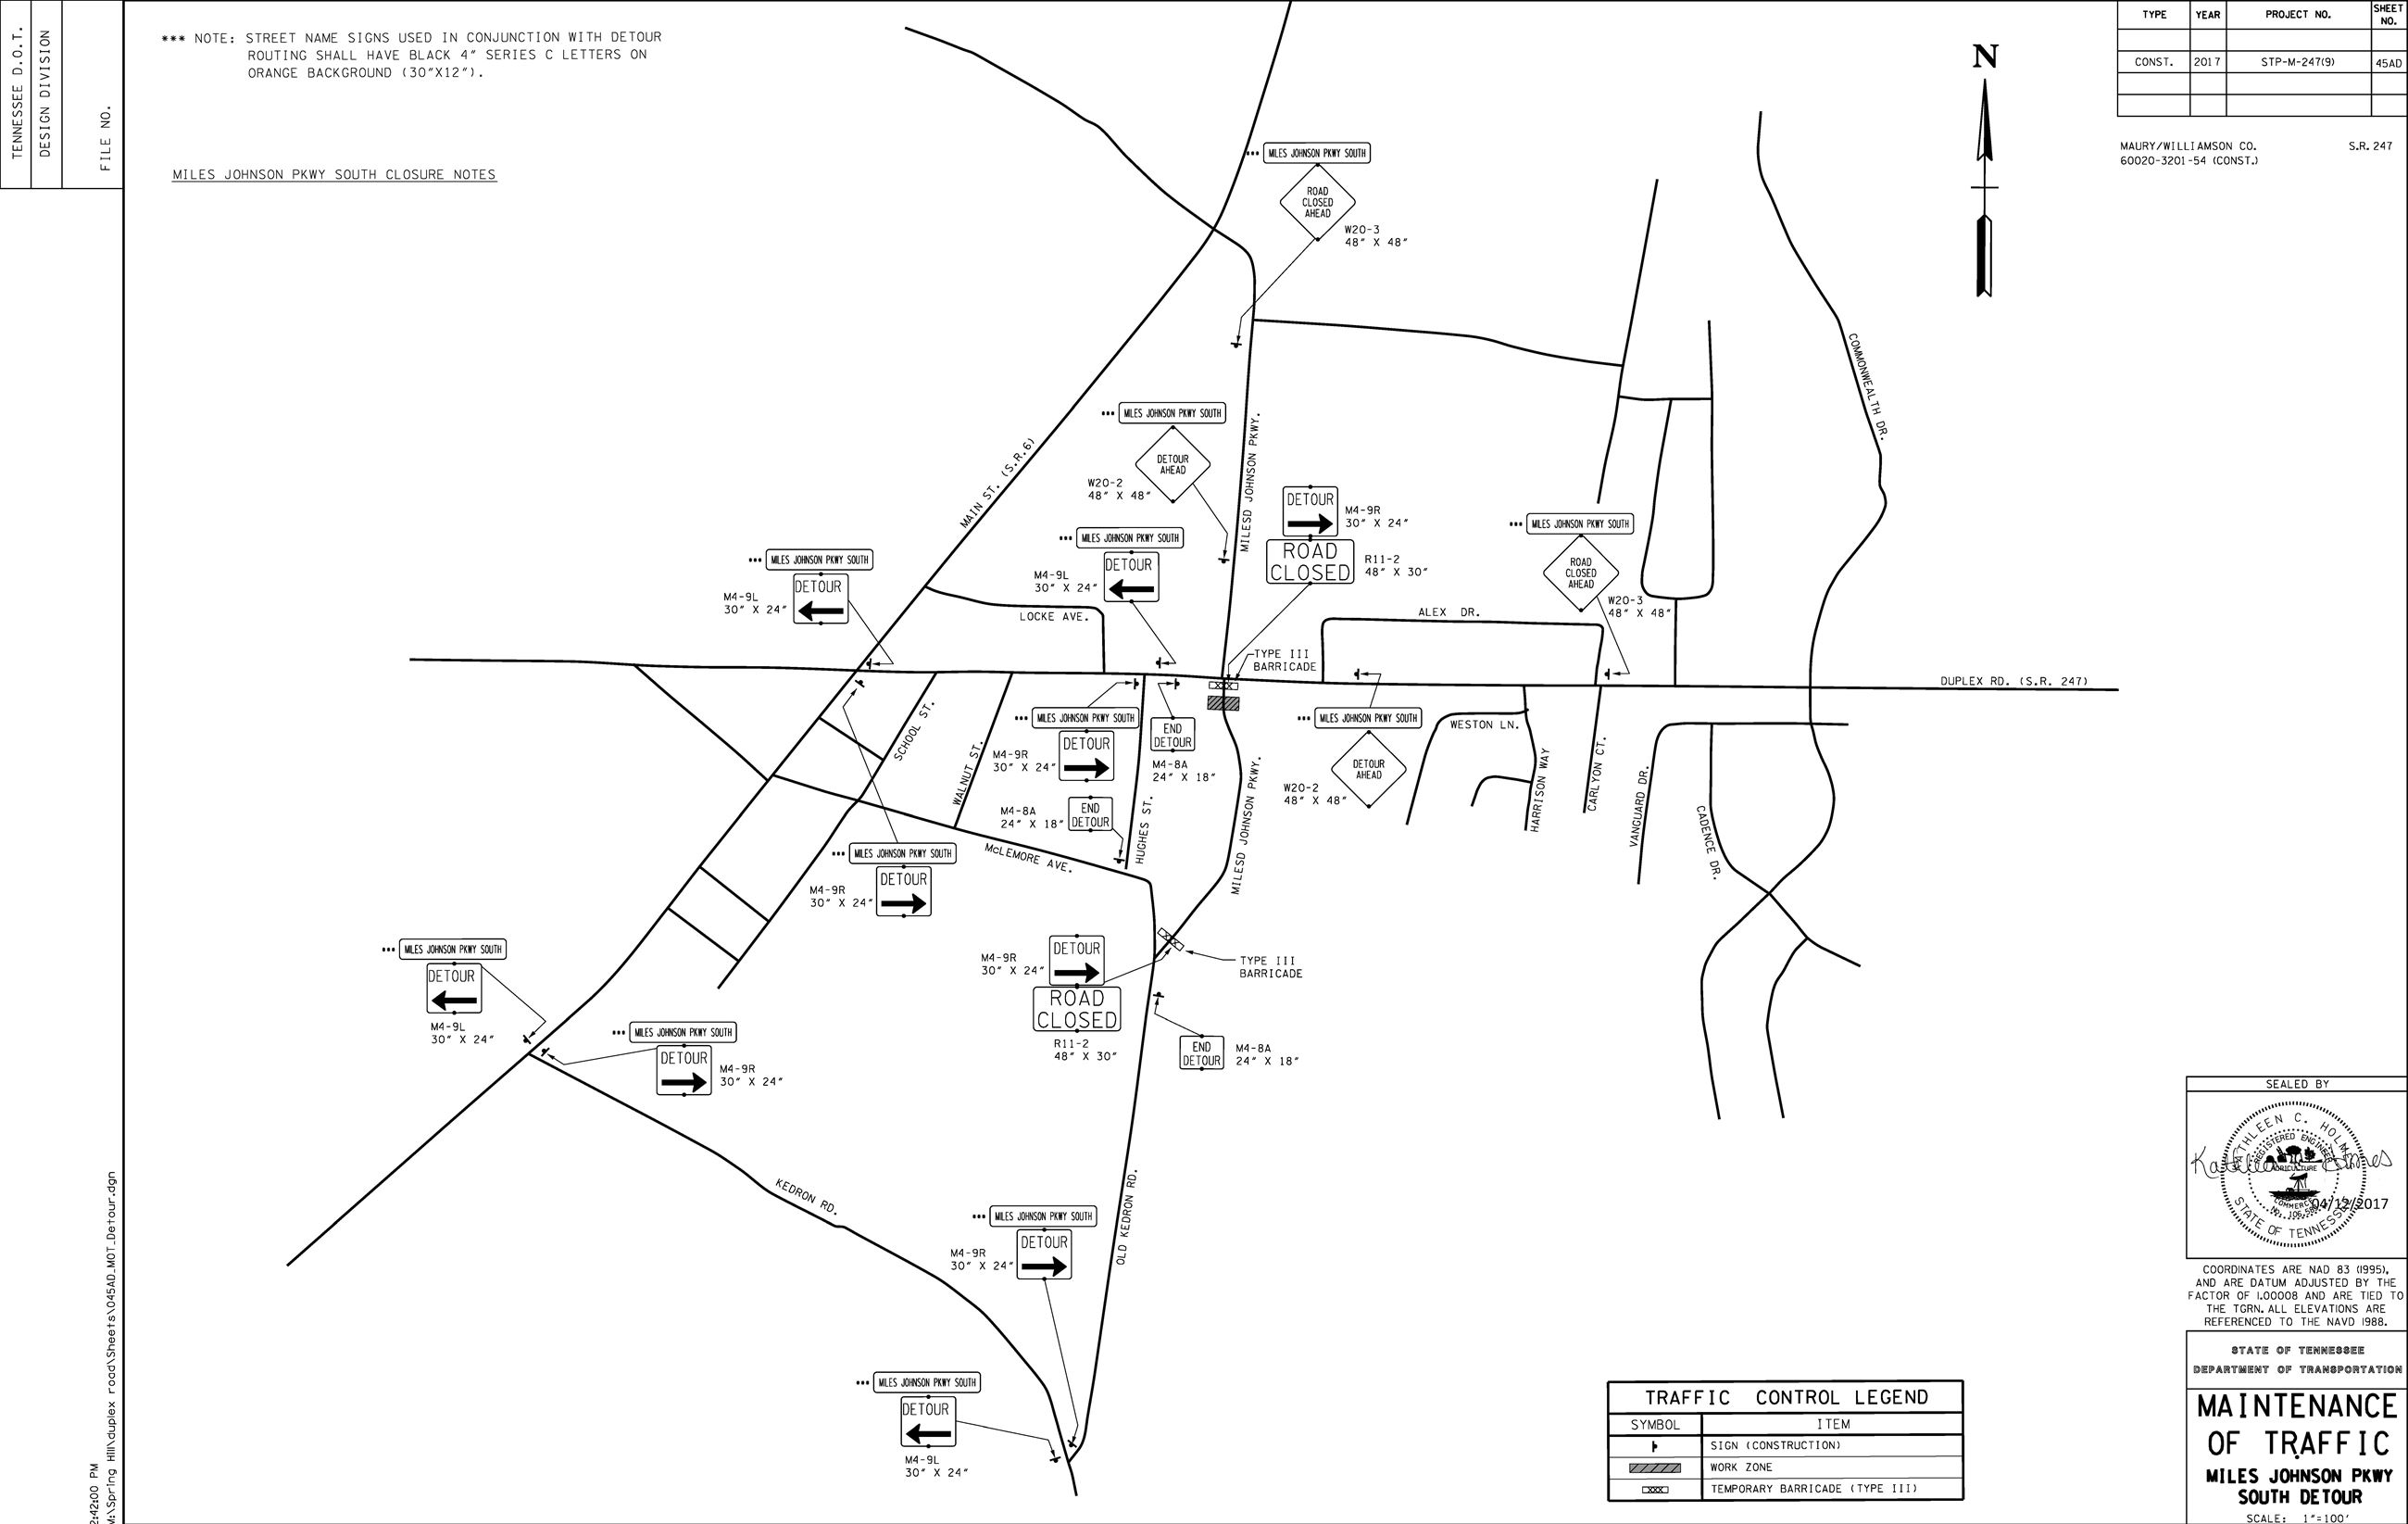 Spring Hill Tn Official Website M4 Schematic Duplex Rd Reopening Miles Johnson Pkwy Closing For Construction